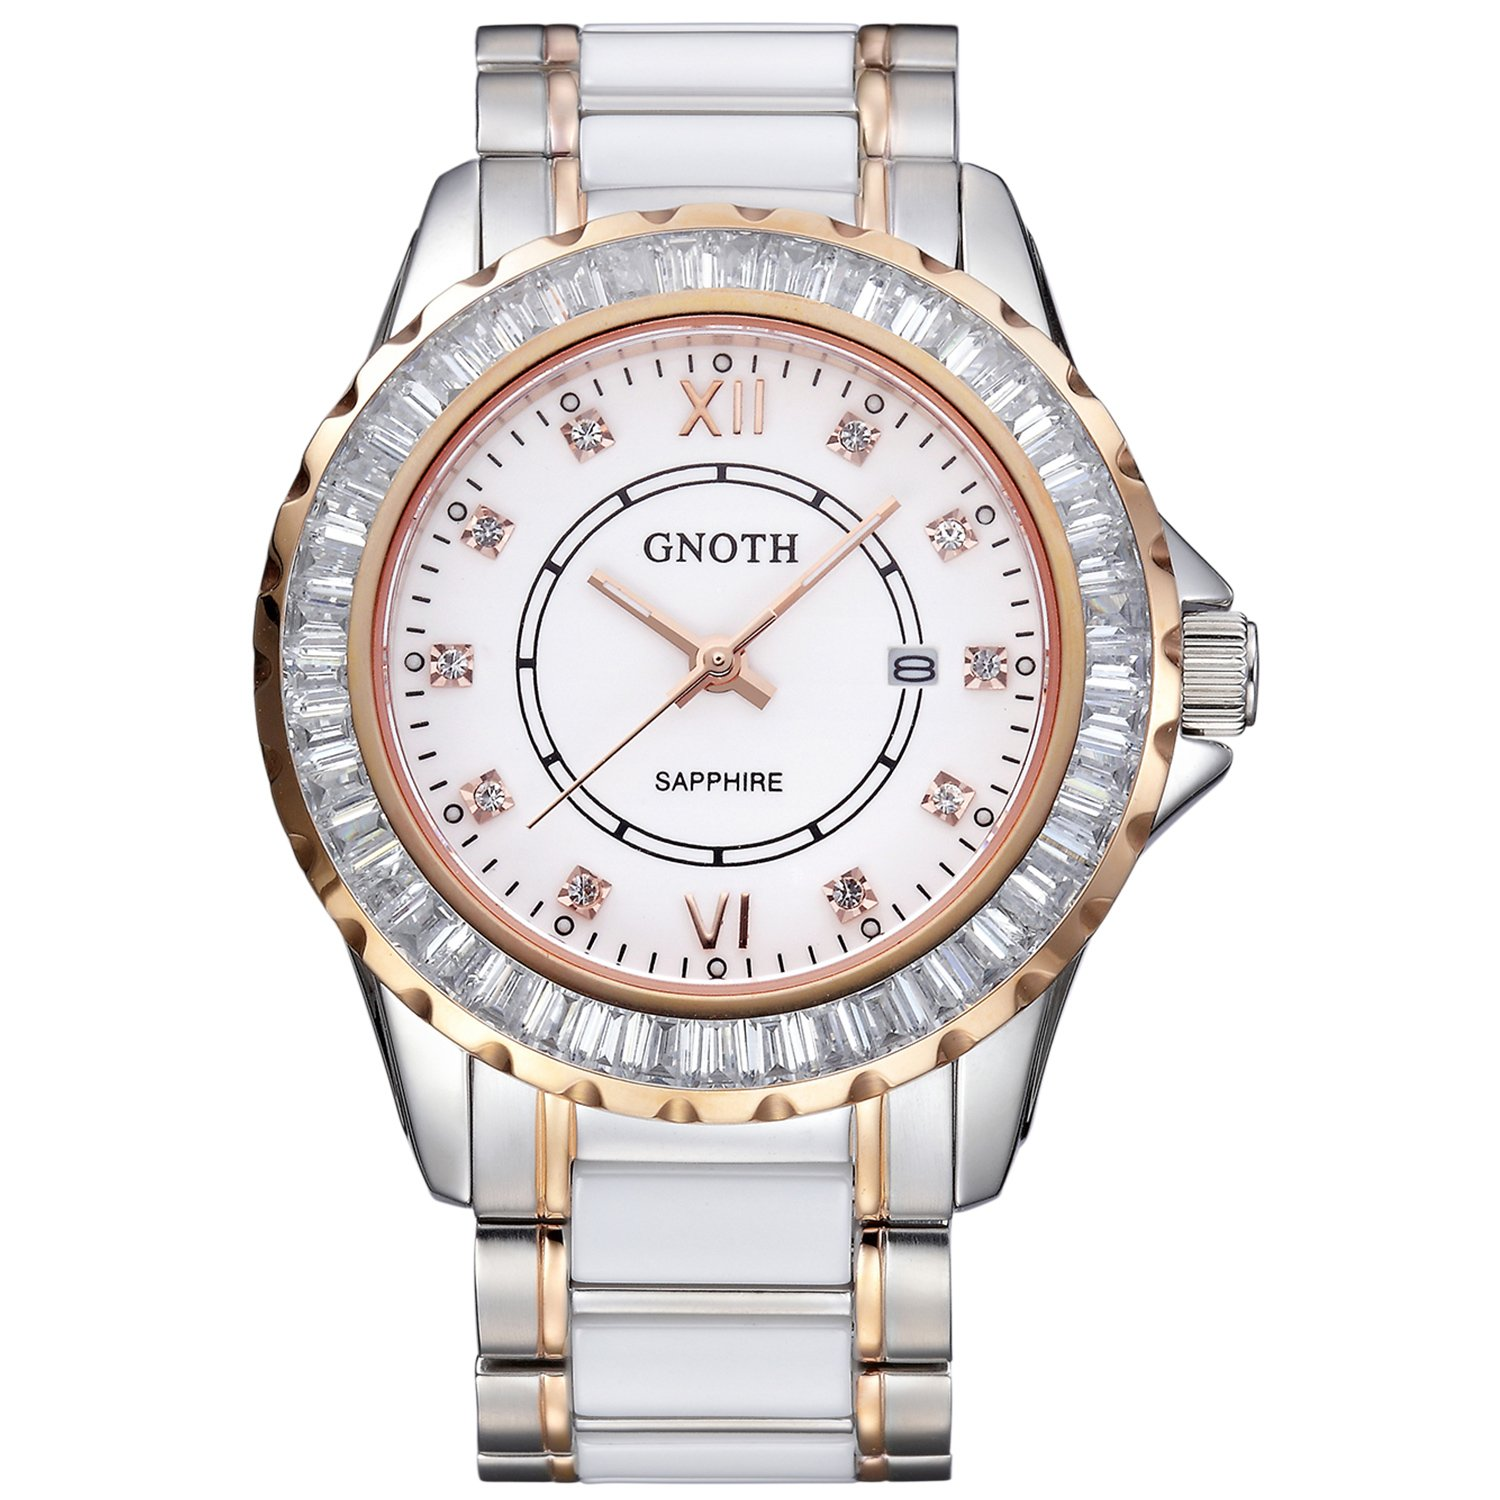 GNOTH Luxury Gorgeous Elegant Fashion Ceramic Business Watch for Wrist Women by GNOTH